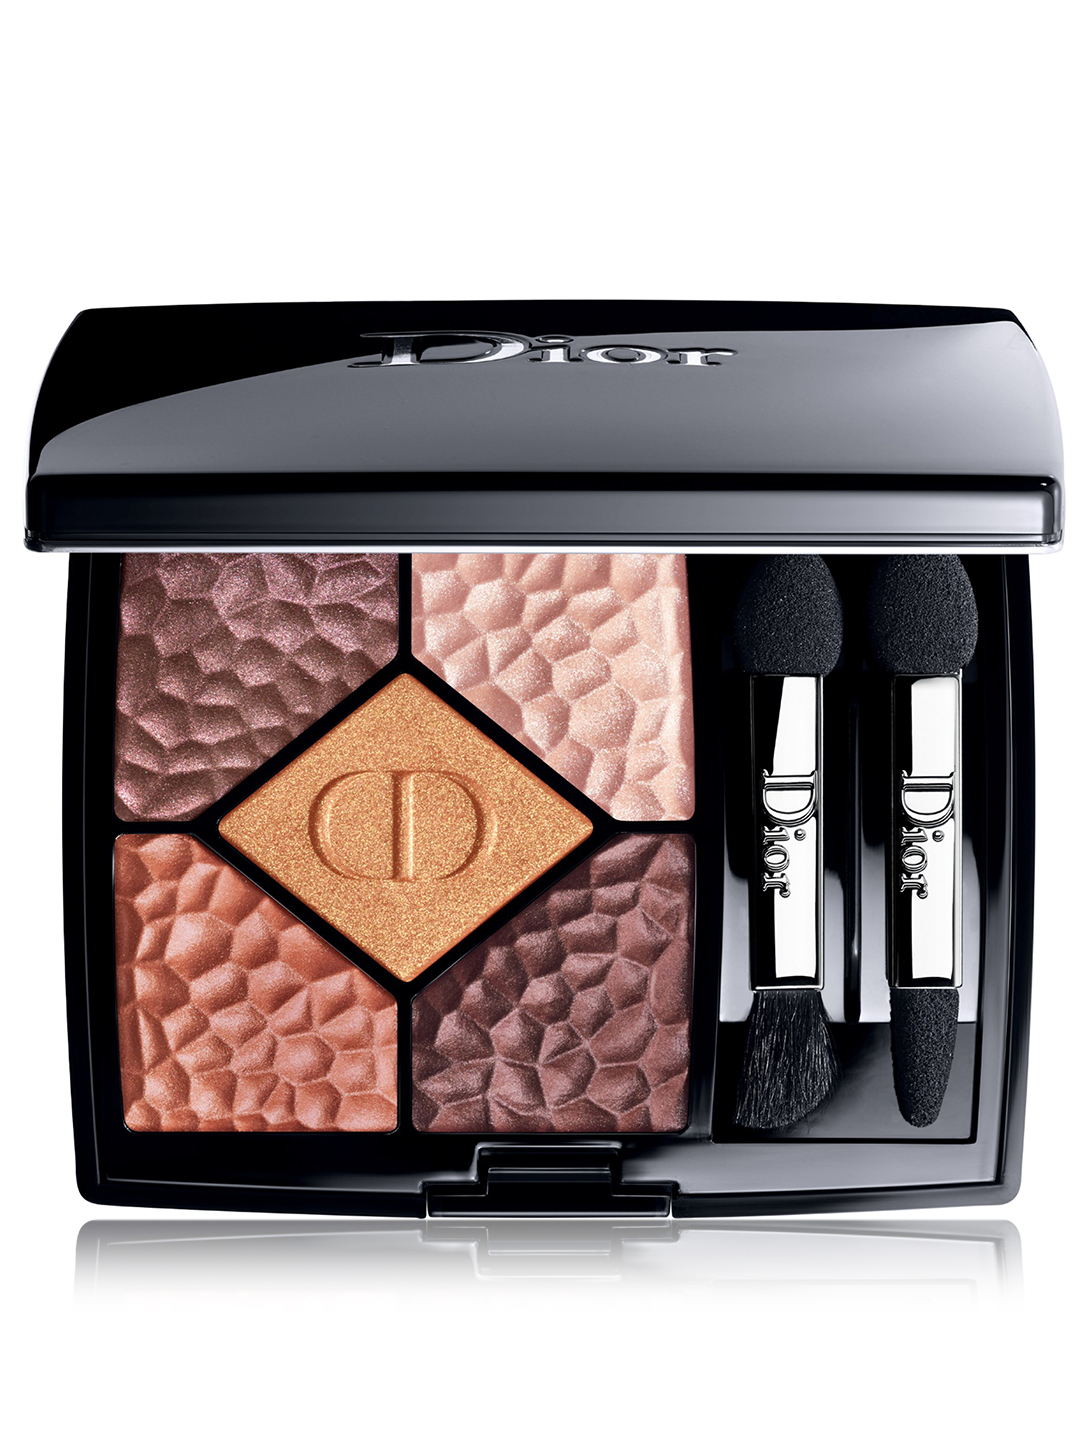 DIOR 5 Couleurs High Fidelity Colours & Effects Eyeshadow Palette - Wild Earth Limited Edition Beauty Brown